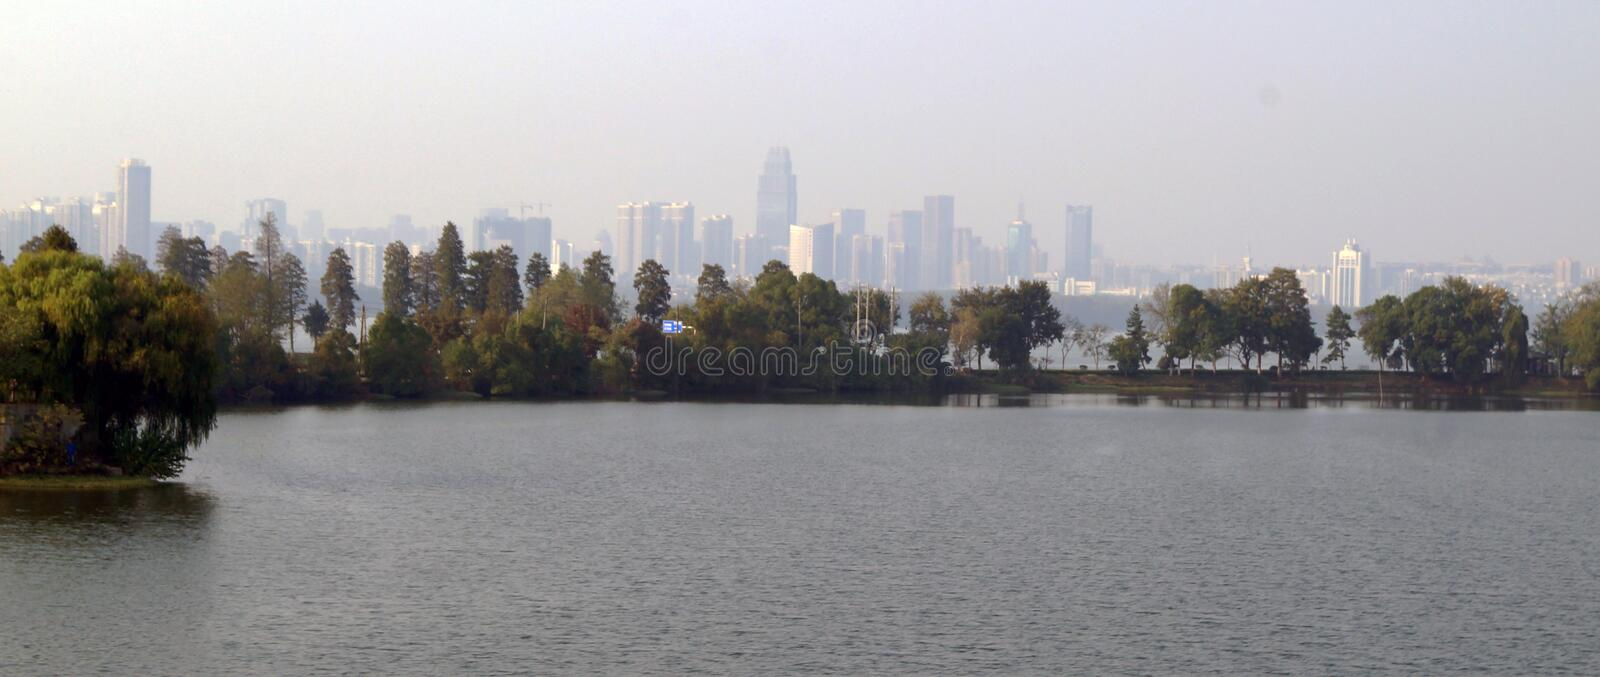 Wuhan China in the back. View of the chinese city of Wuhan in Hubei province, panoramic view of a lake, trees and the tall buildings of the city in the royalty free stock photography